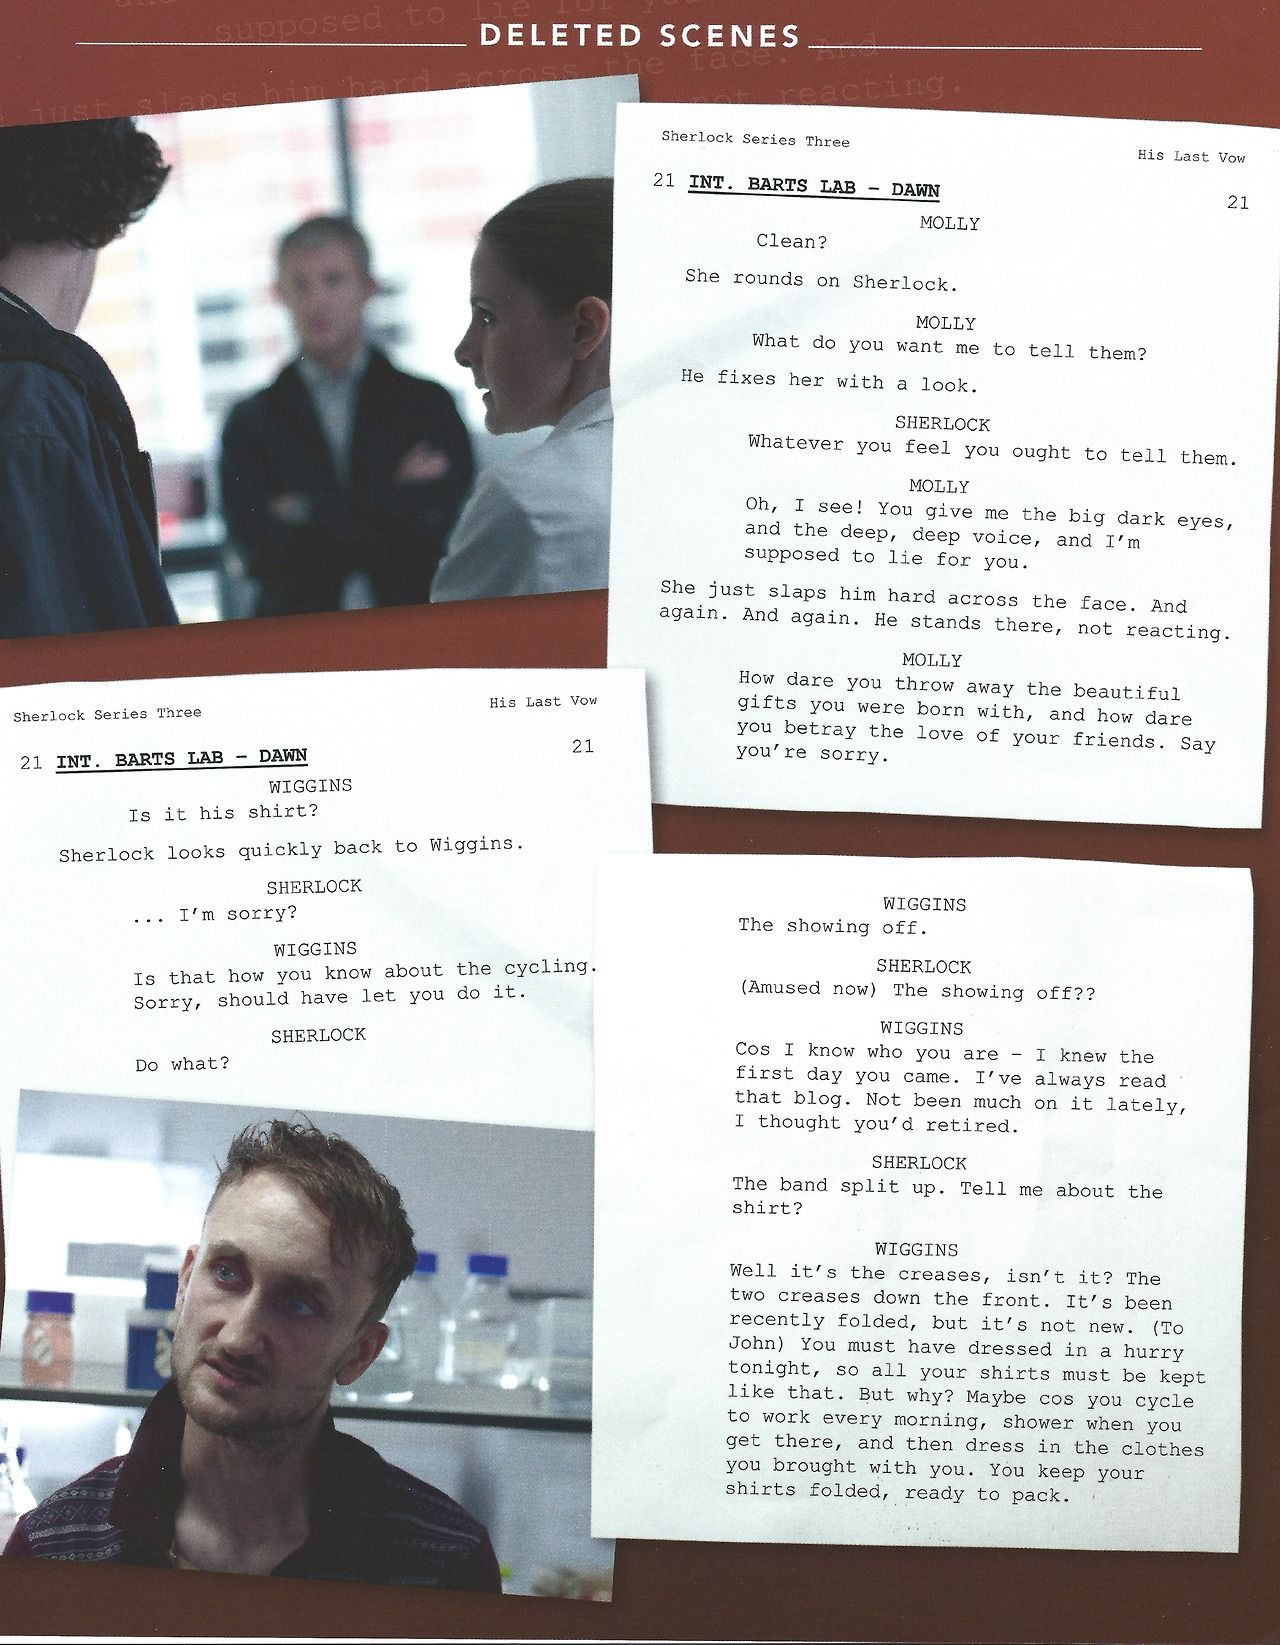 His Last Vow  Script pages for some of this episode's